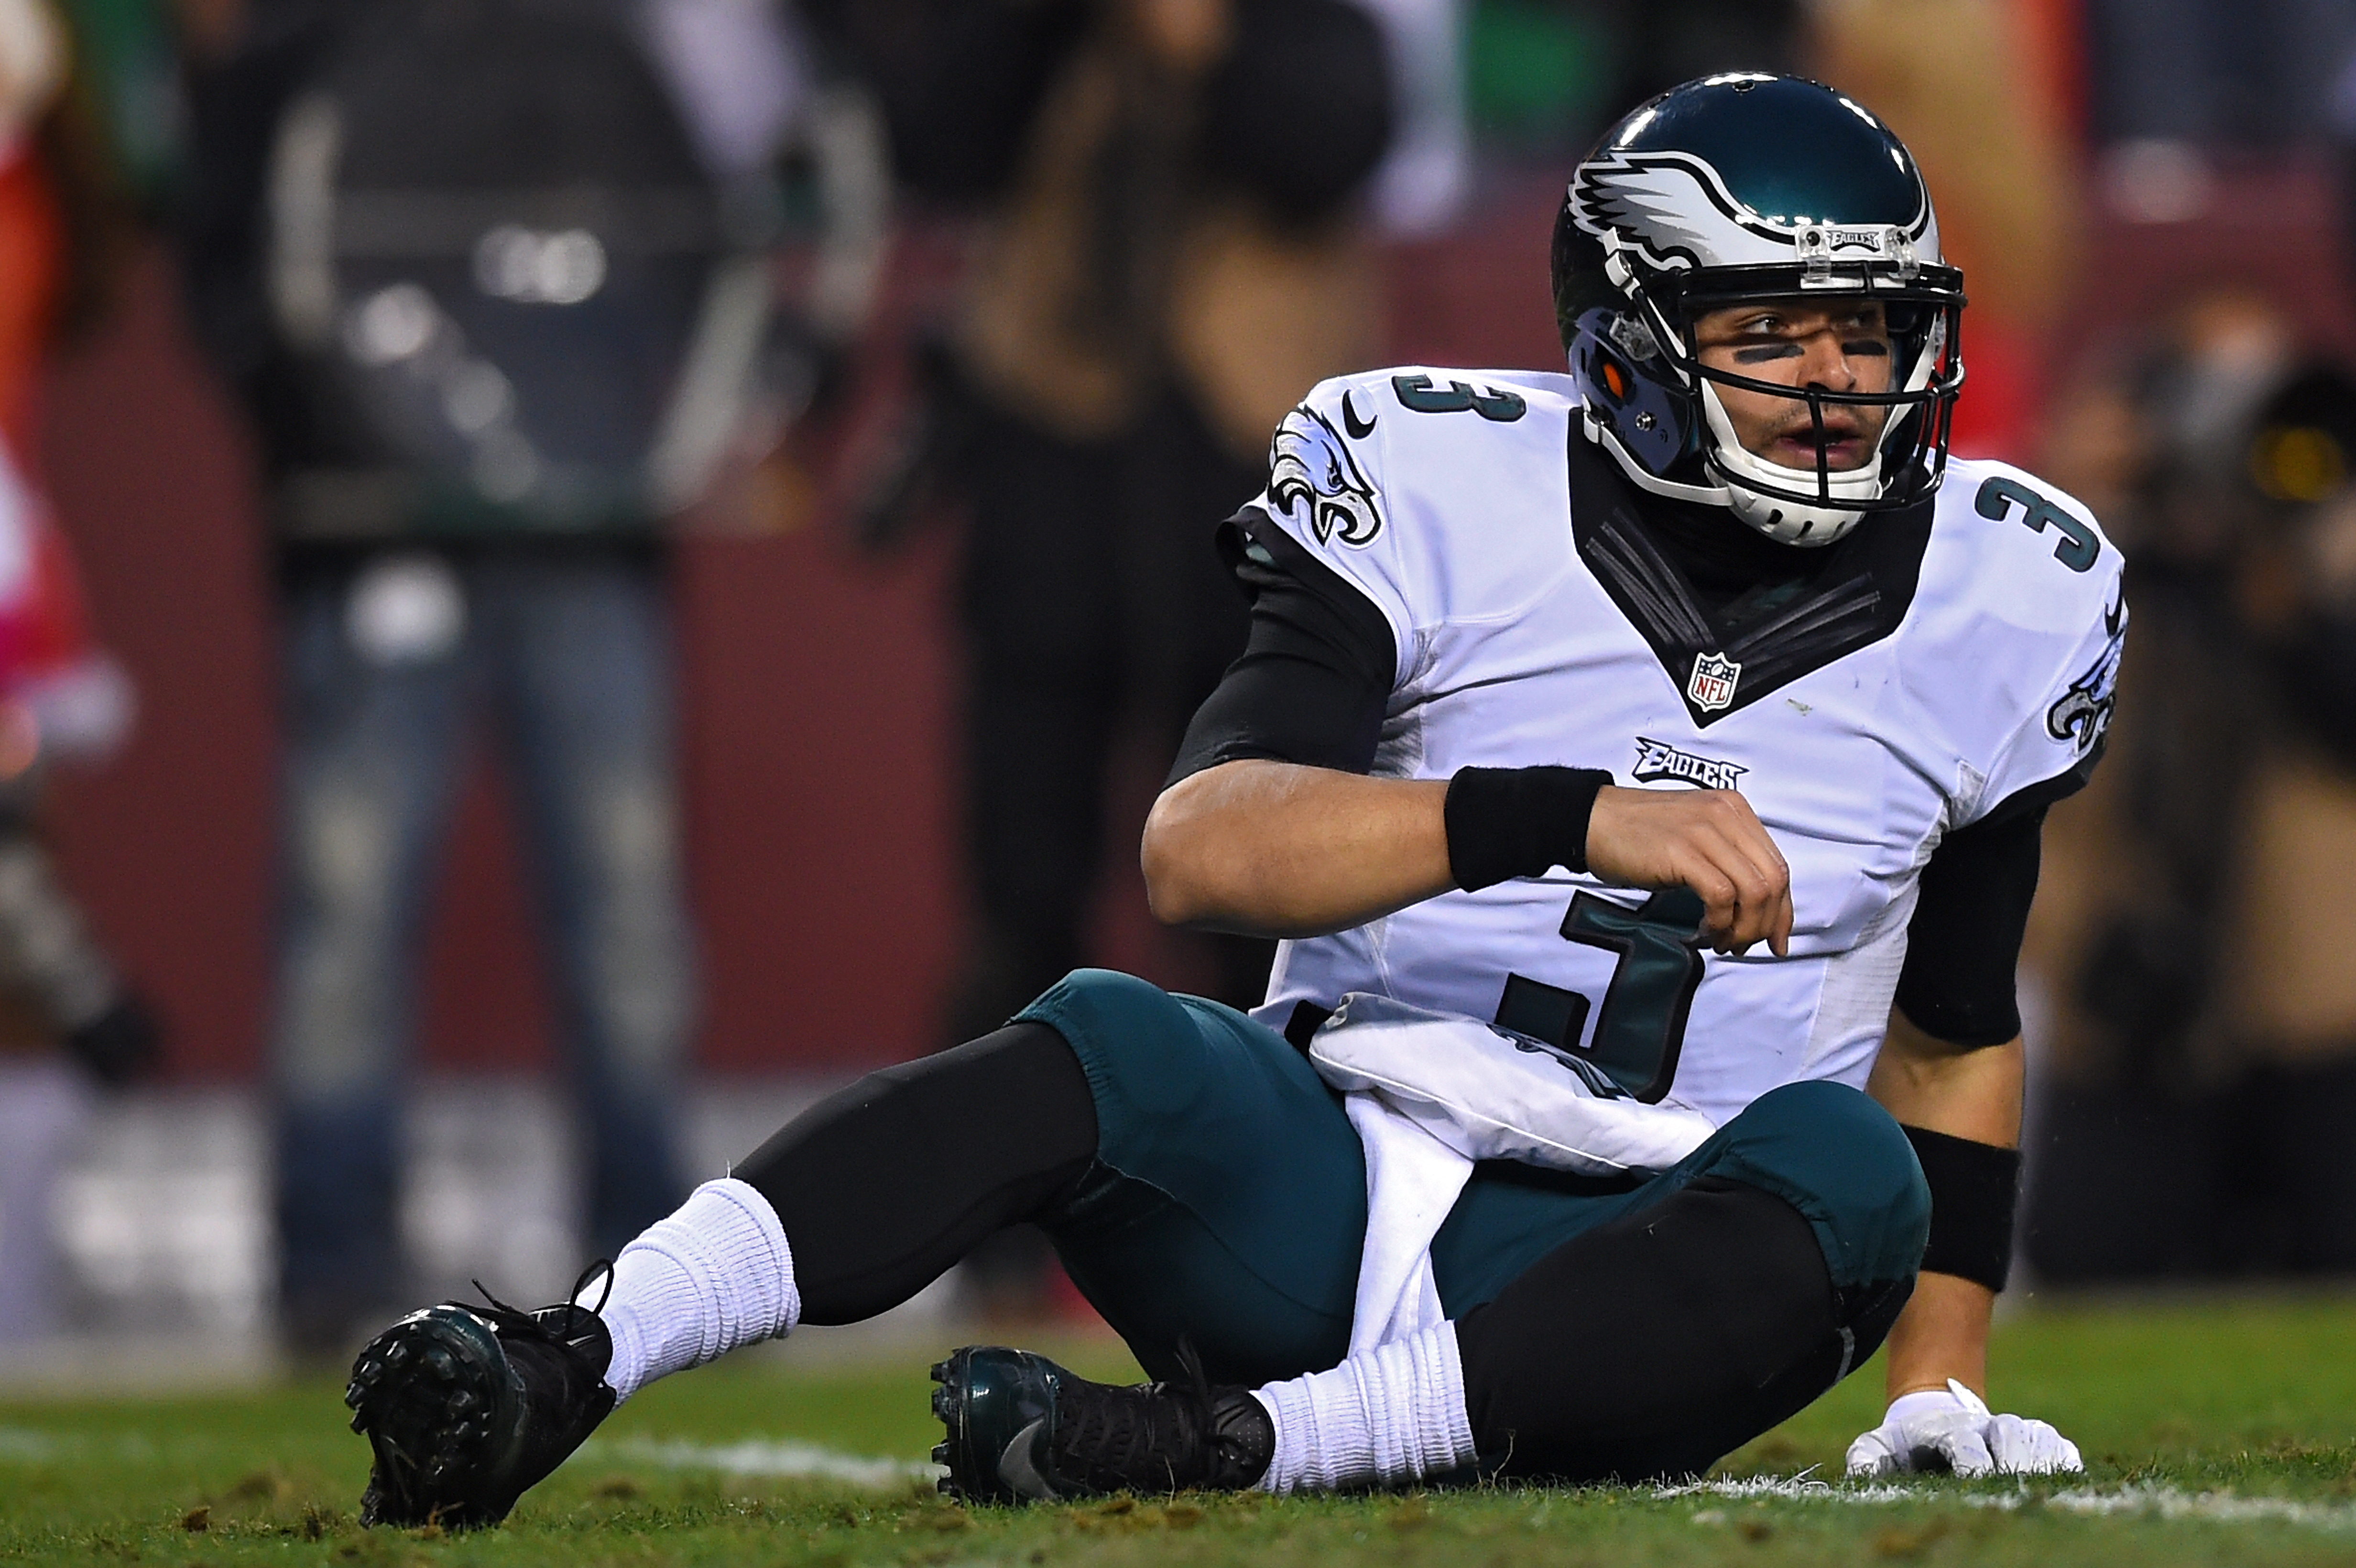 Things haven't turned out the way Mark Sanchez and the Eagles hoped they would this season